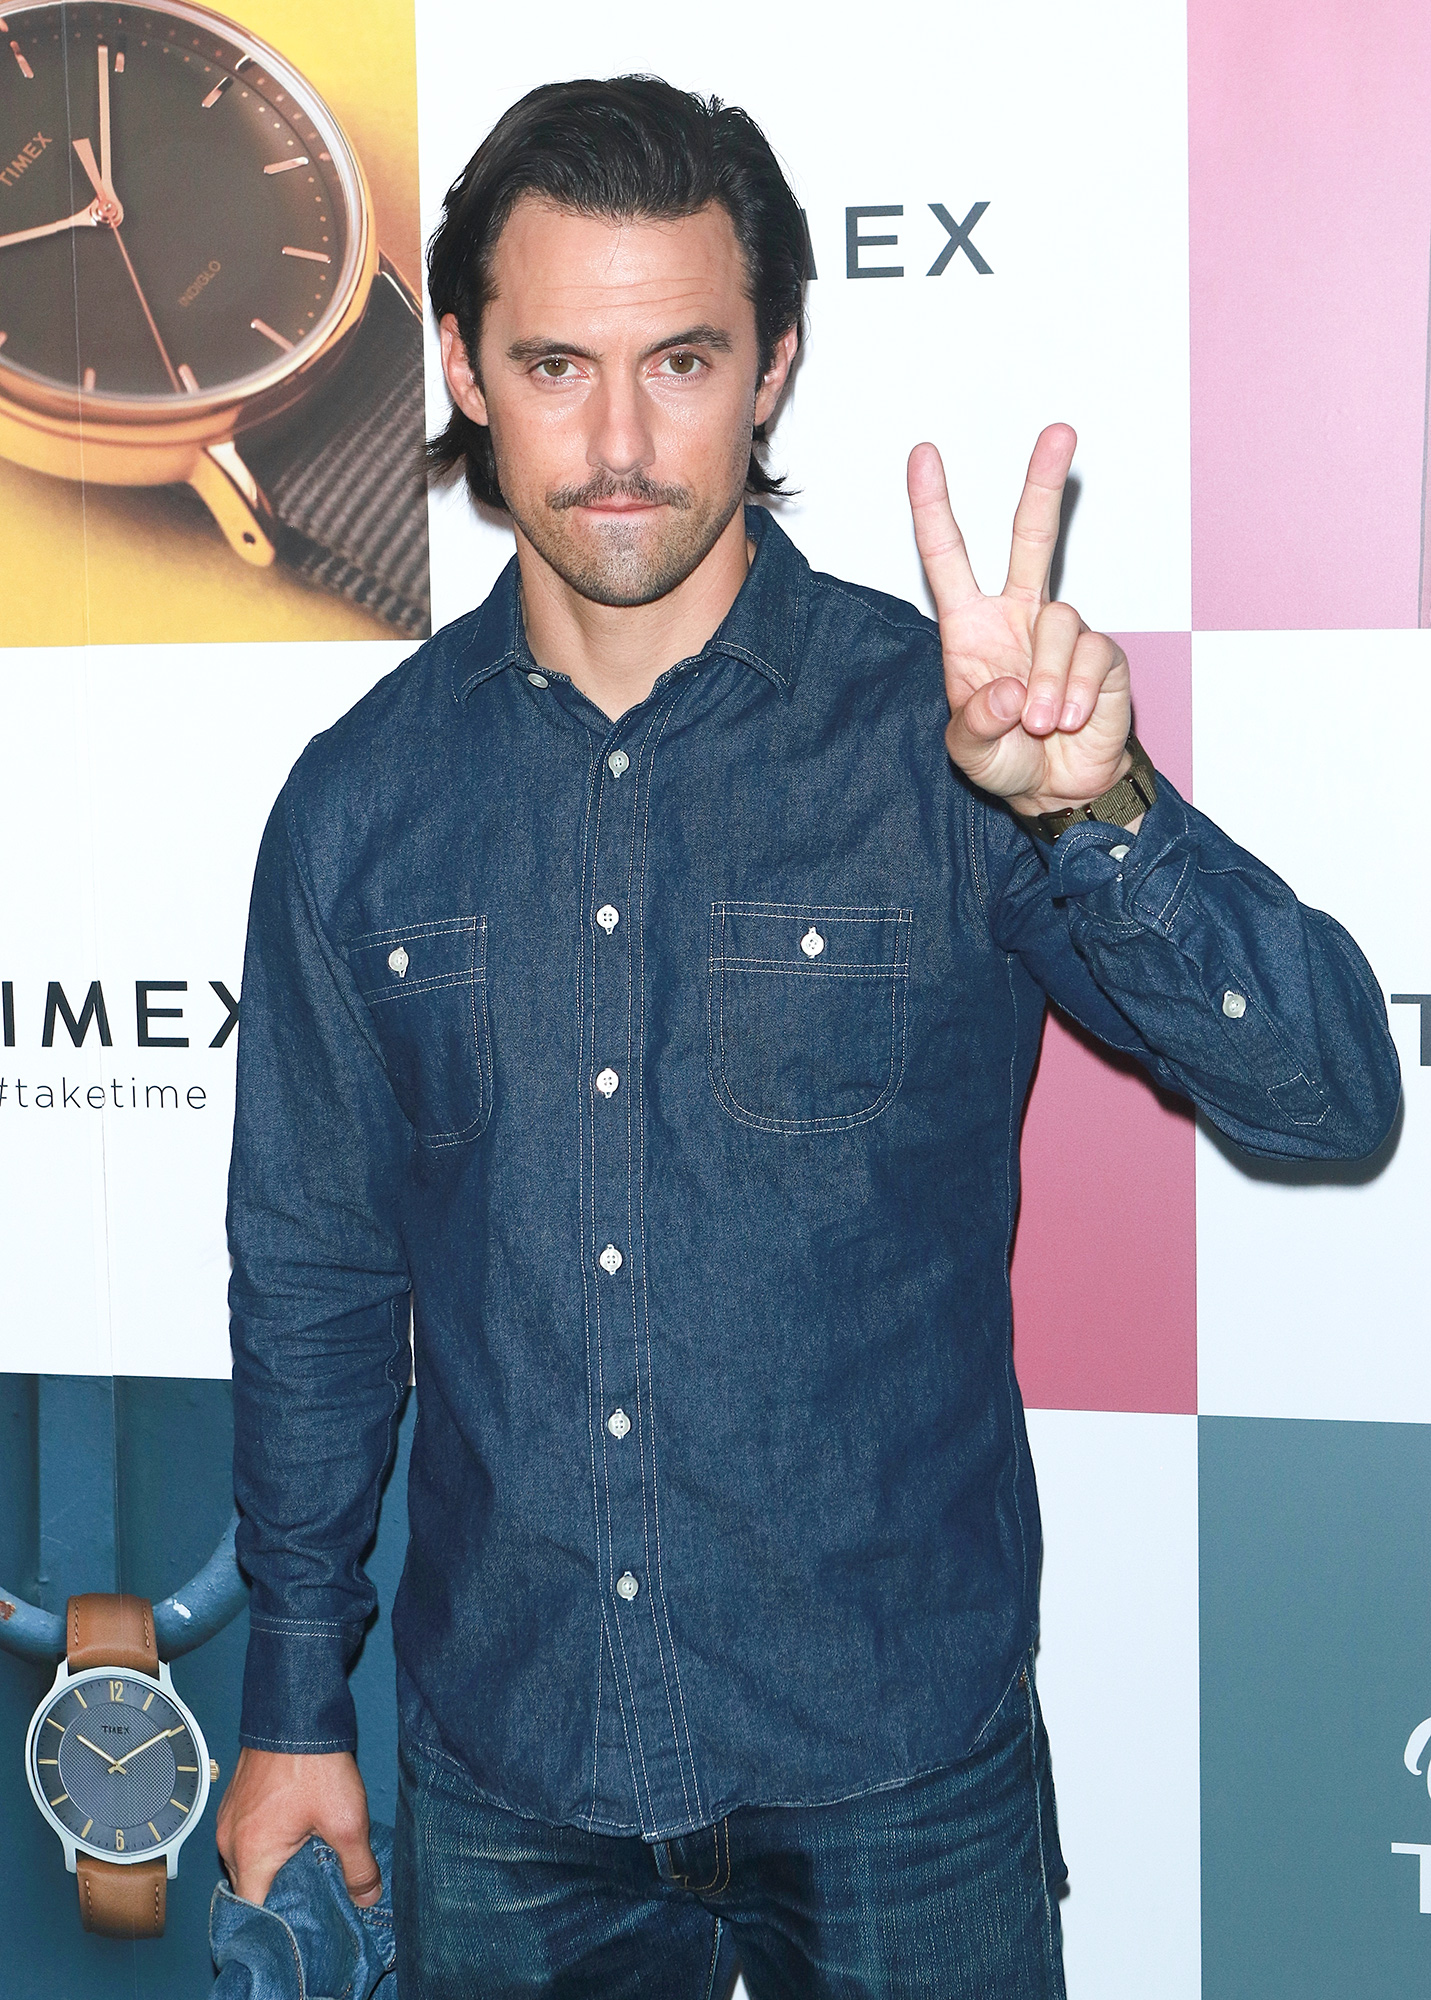 Milo Ventimiglia Hosts We are Timex Event and Unveils Timex Fall 2017 Collection at Lightbox